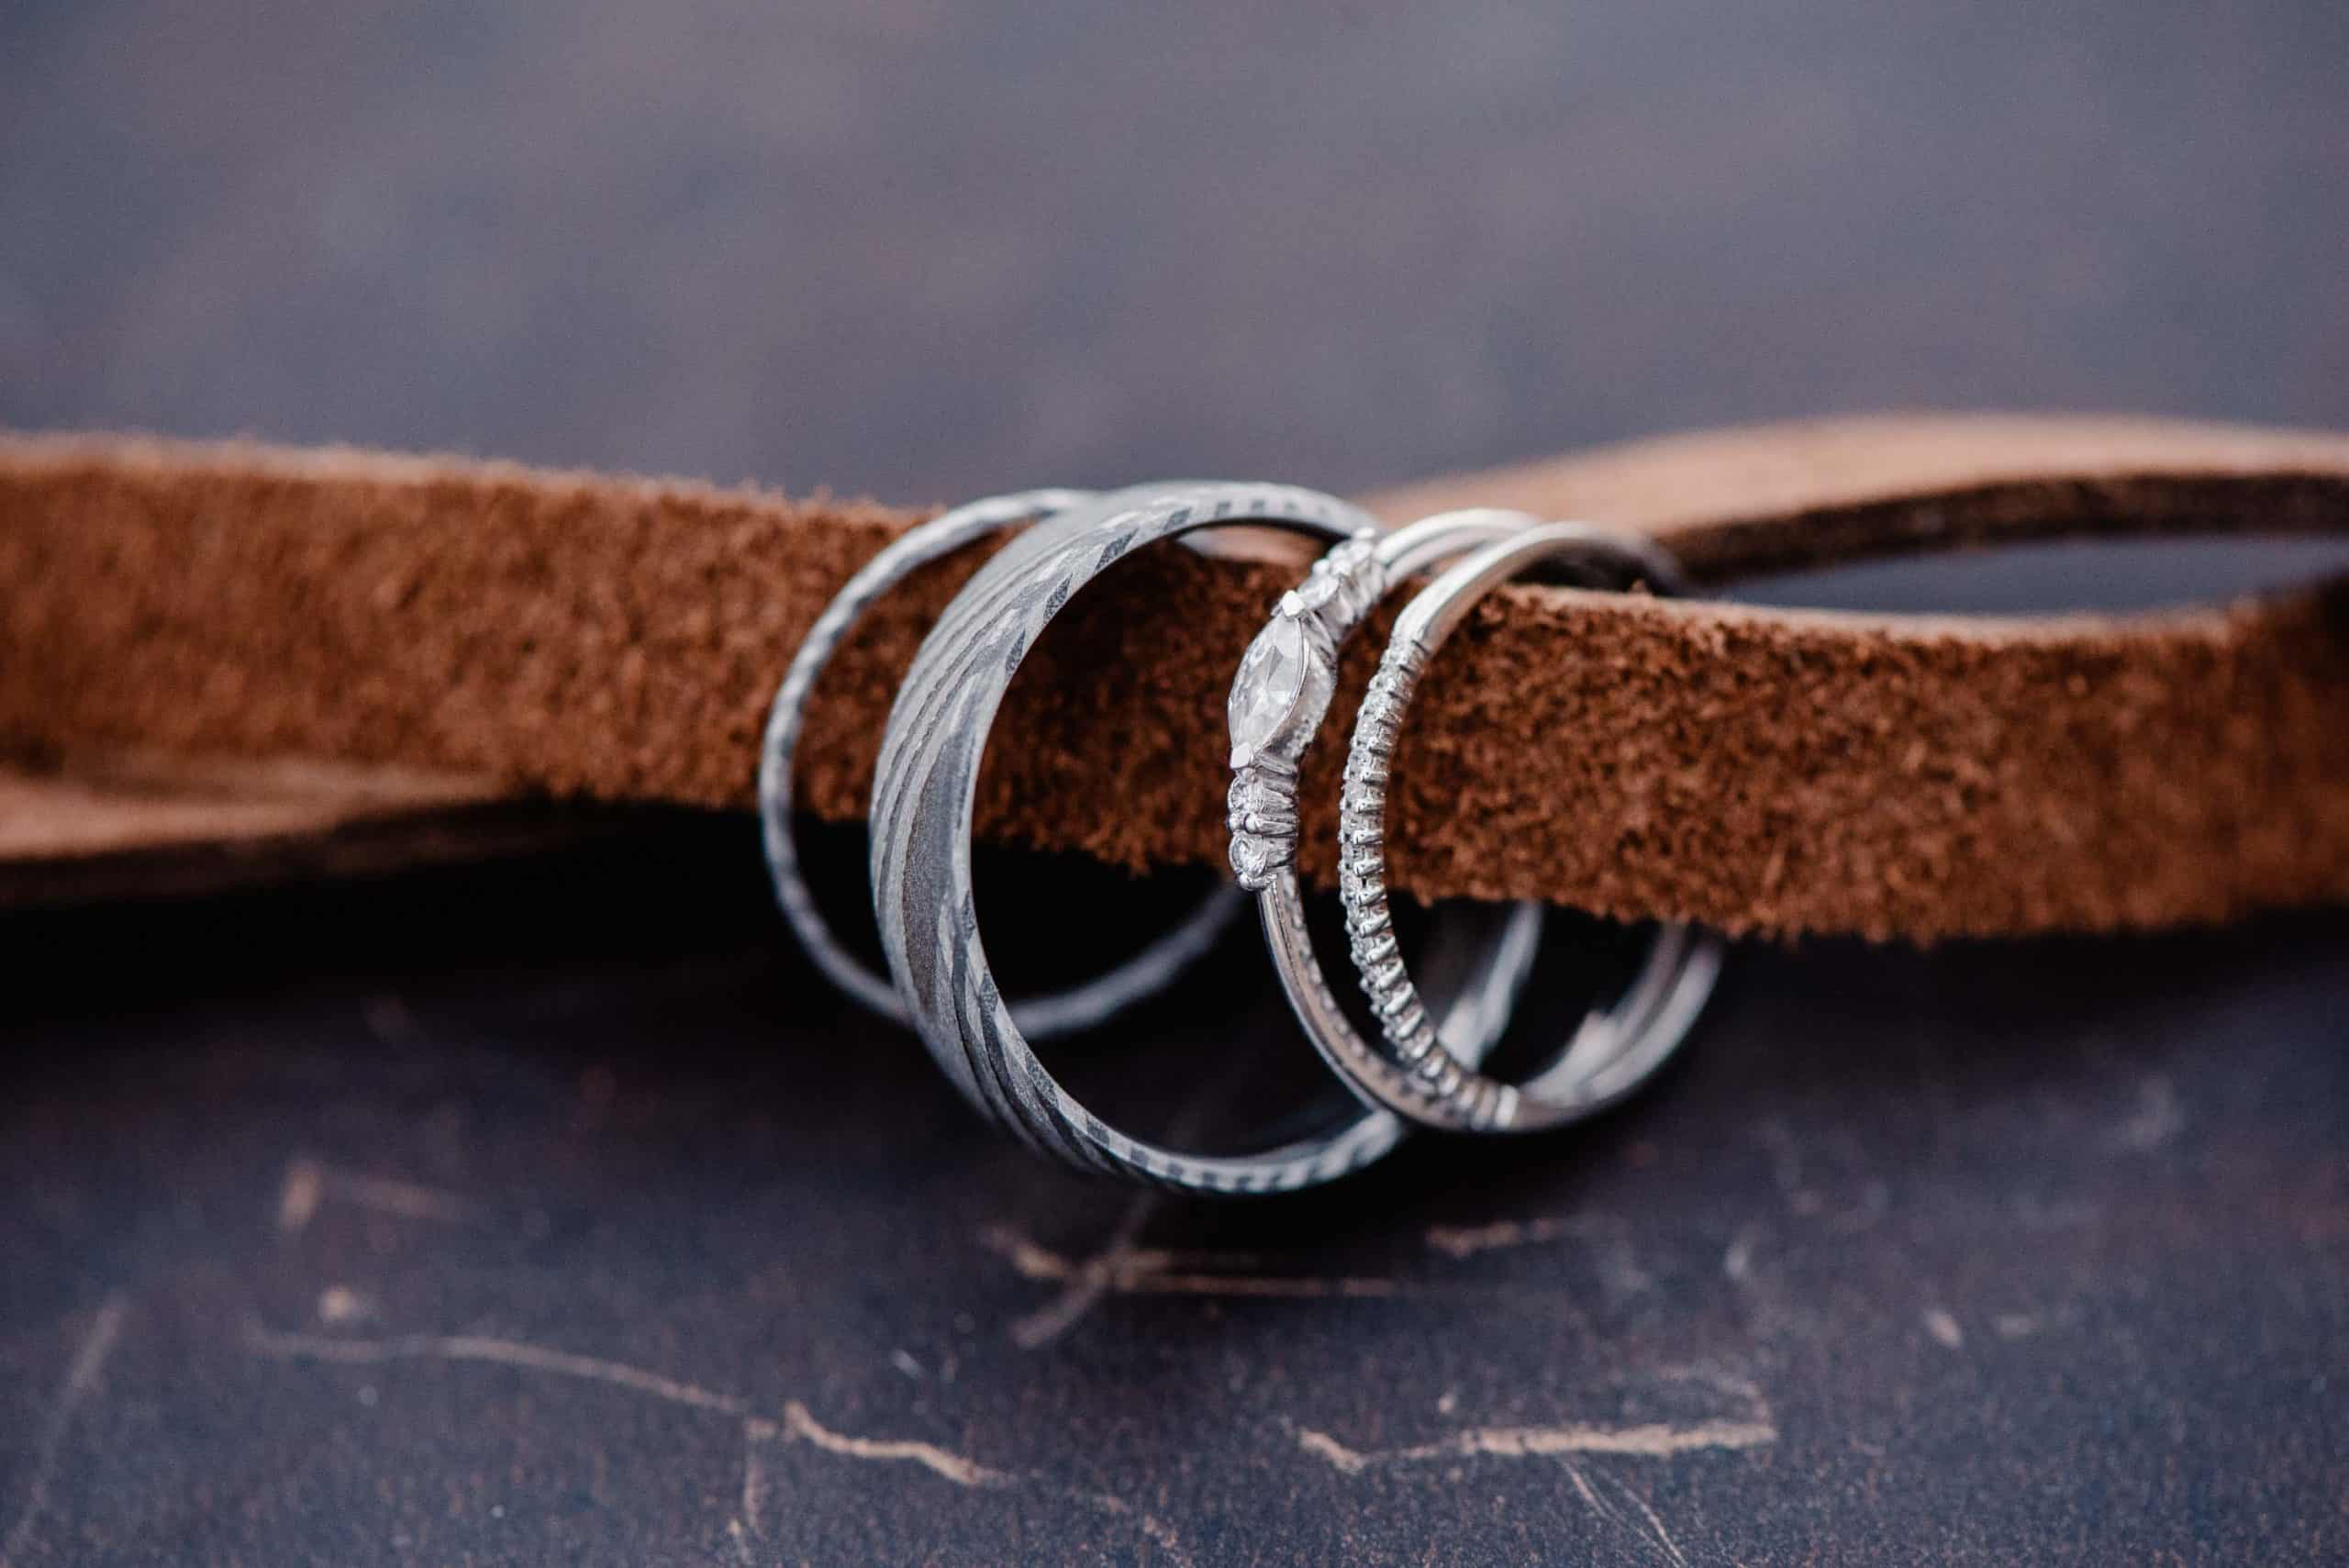 leather straps tied together with rings hanging on the straps